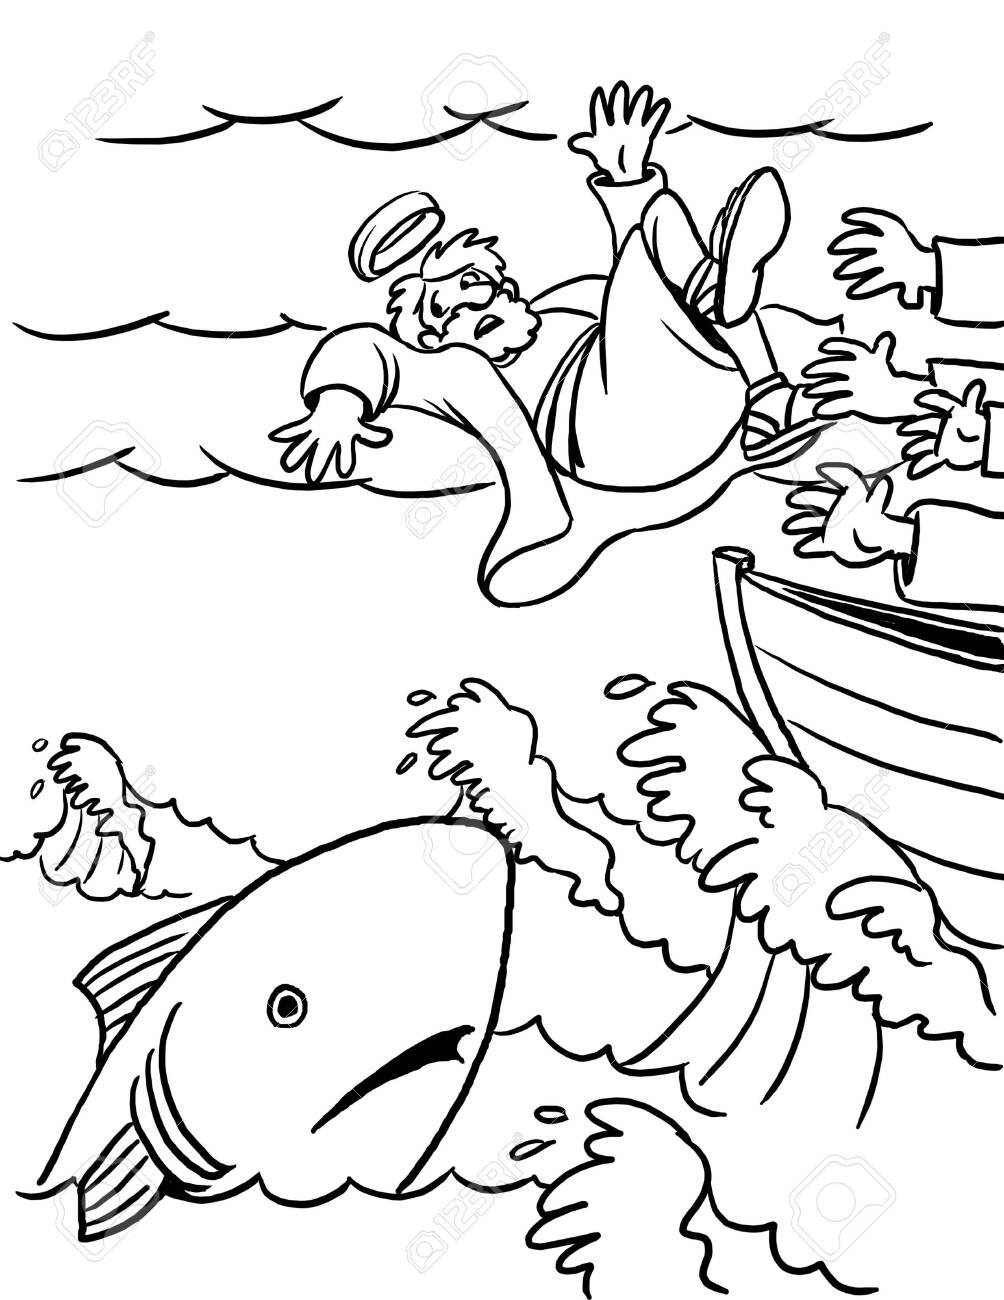 Coloring Page Of Jonah And The Big Fish Stock Photo Picture And